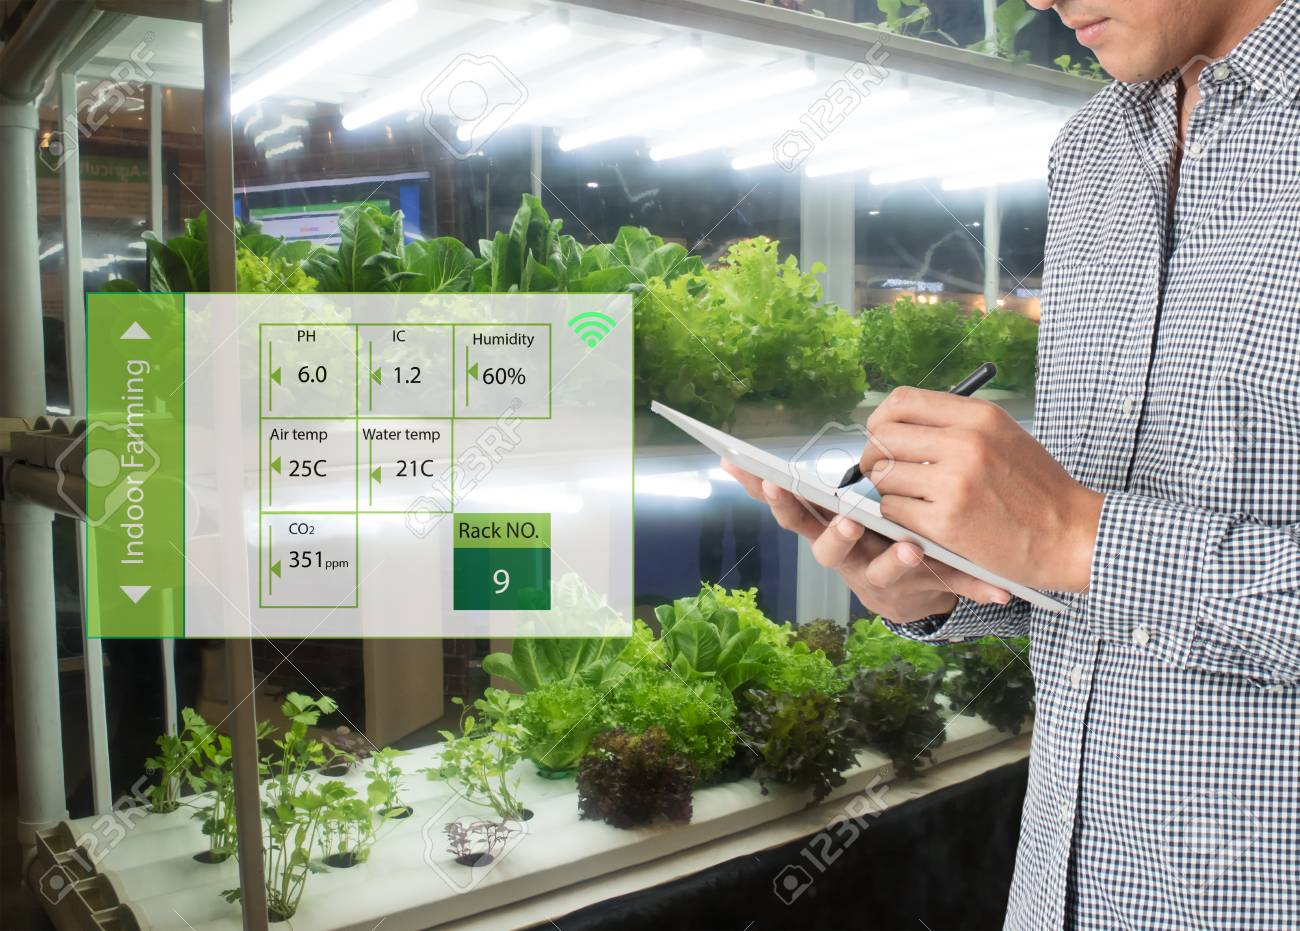 smart agriculture in futuristic concept, farmer use technology to monitor, control and adjustment led, atmosphere,humidity, water level and keep tracking harvesting time in vertical or indoor farming - 87117741